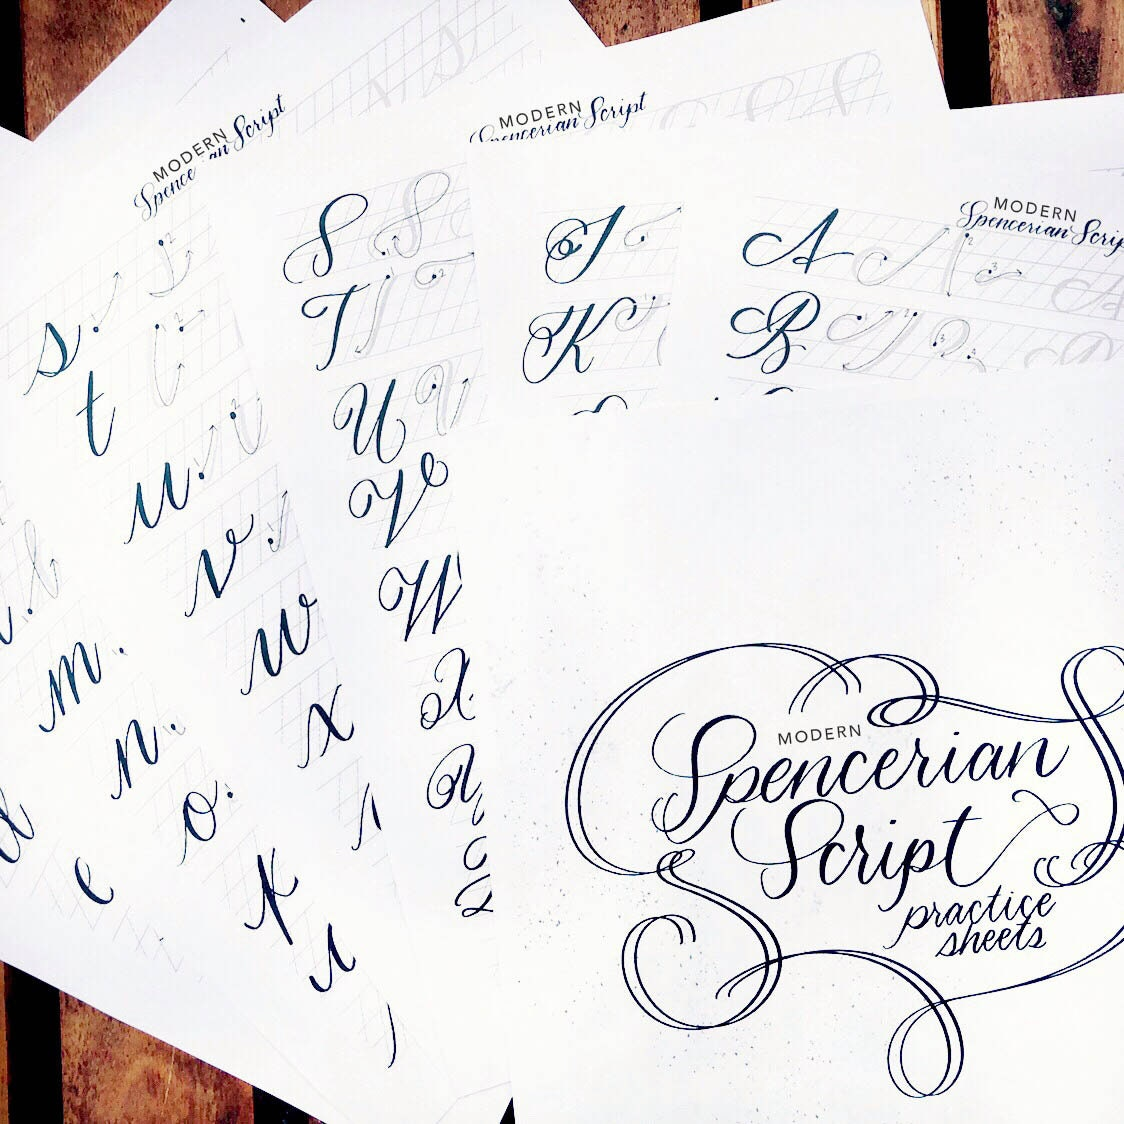 New Modern Spencerian Script Guide Hand Lettering And Etsy